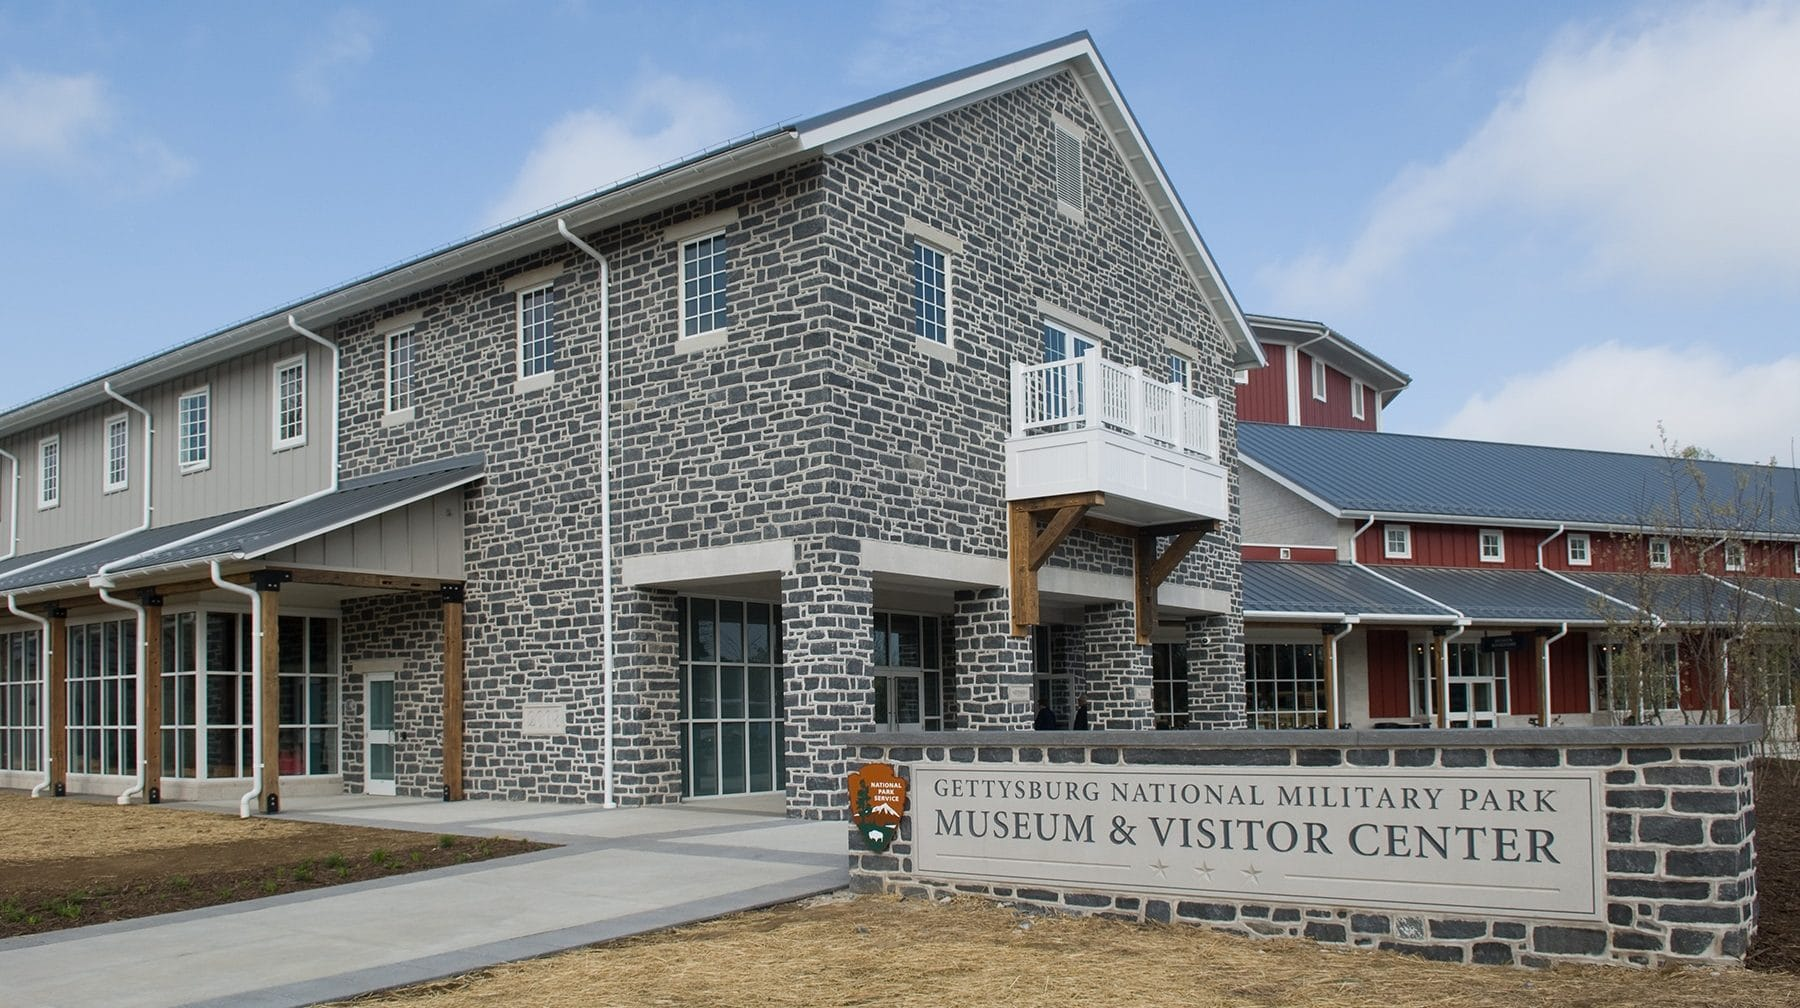 Gettysburg Museum and Visitor Center Exterior